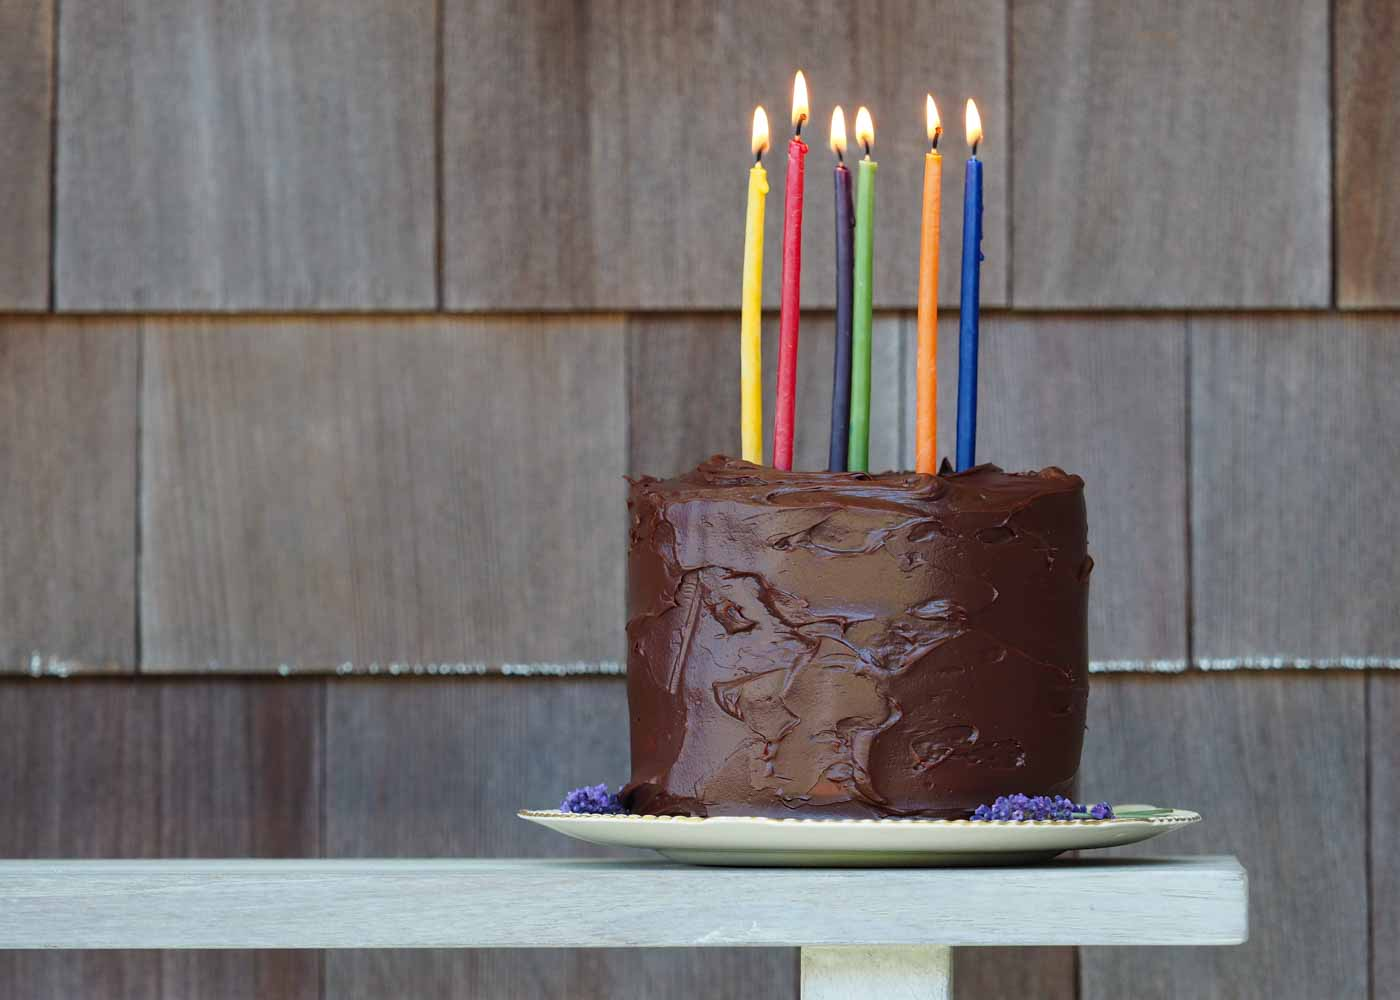 Pioneer Candle's beeswax birthday candles atop a white cake with chocolate ganache frosting.